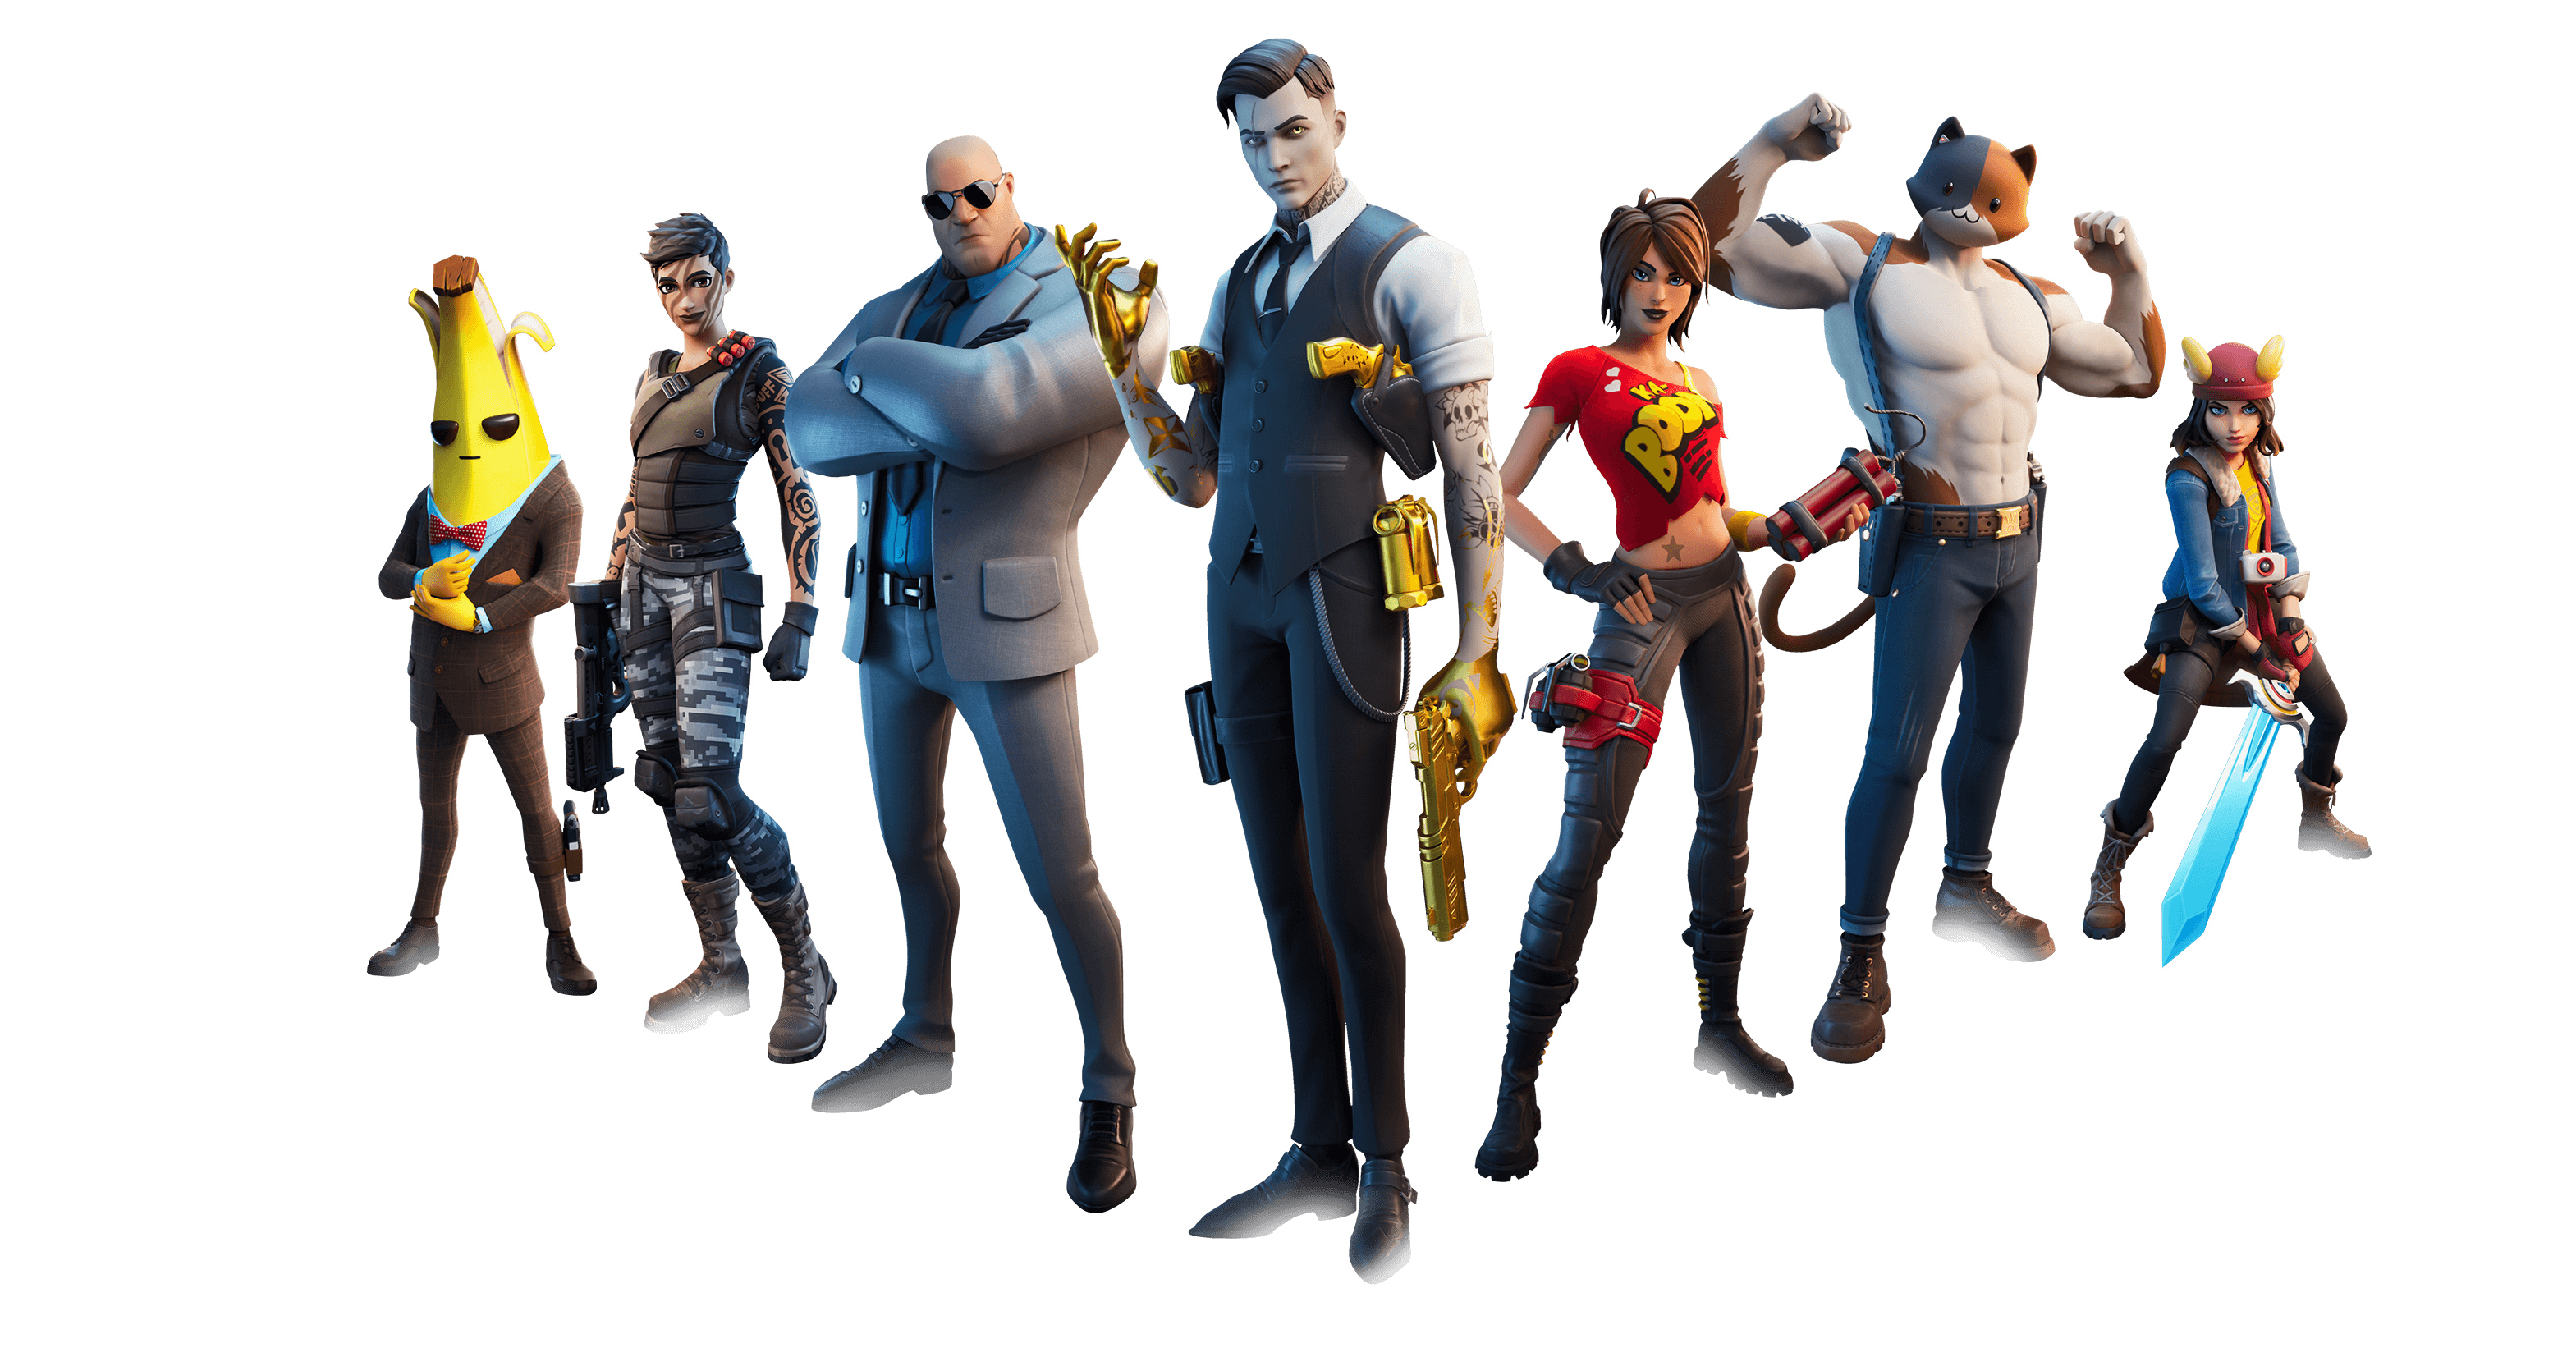 1125x2436 Fortnite 4k 2020 Iphone Xs Iphone 10 Iphone X Hd 4k Wallpapers Images Backgrounds Photos And Pictures